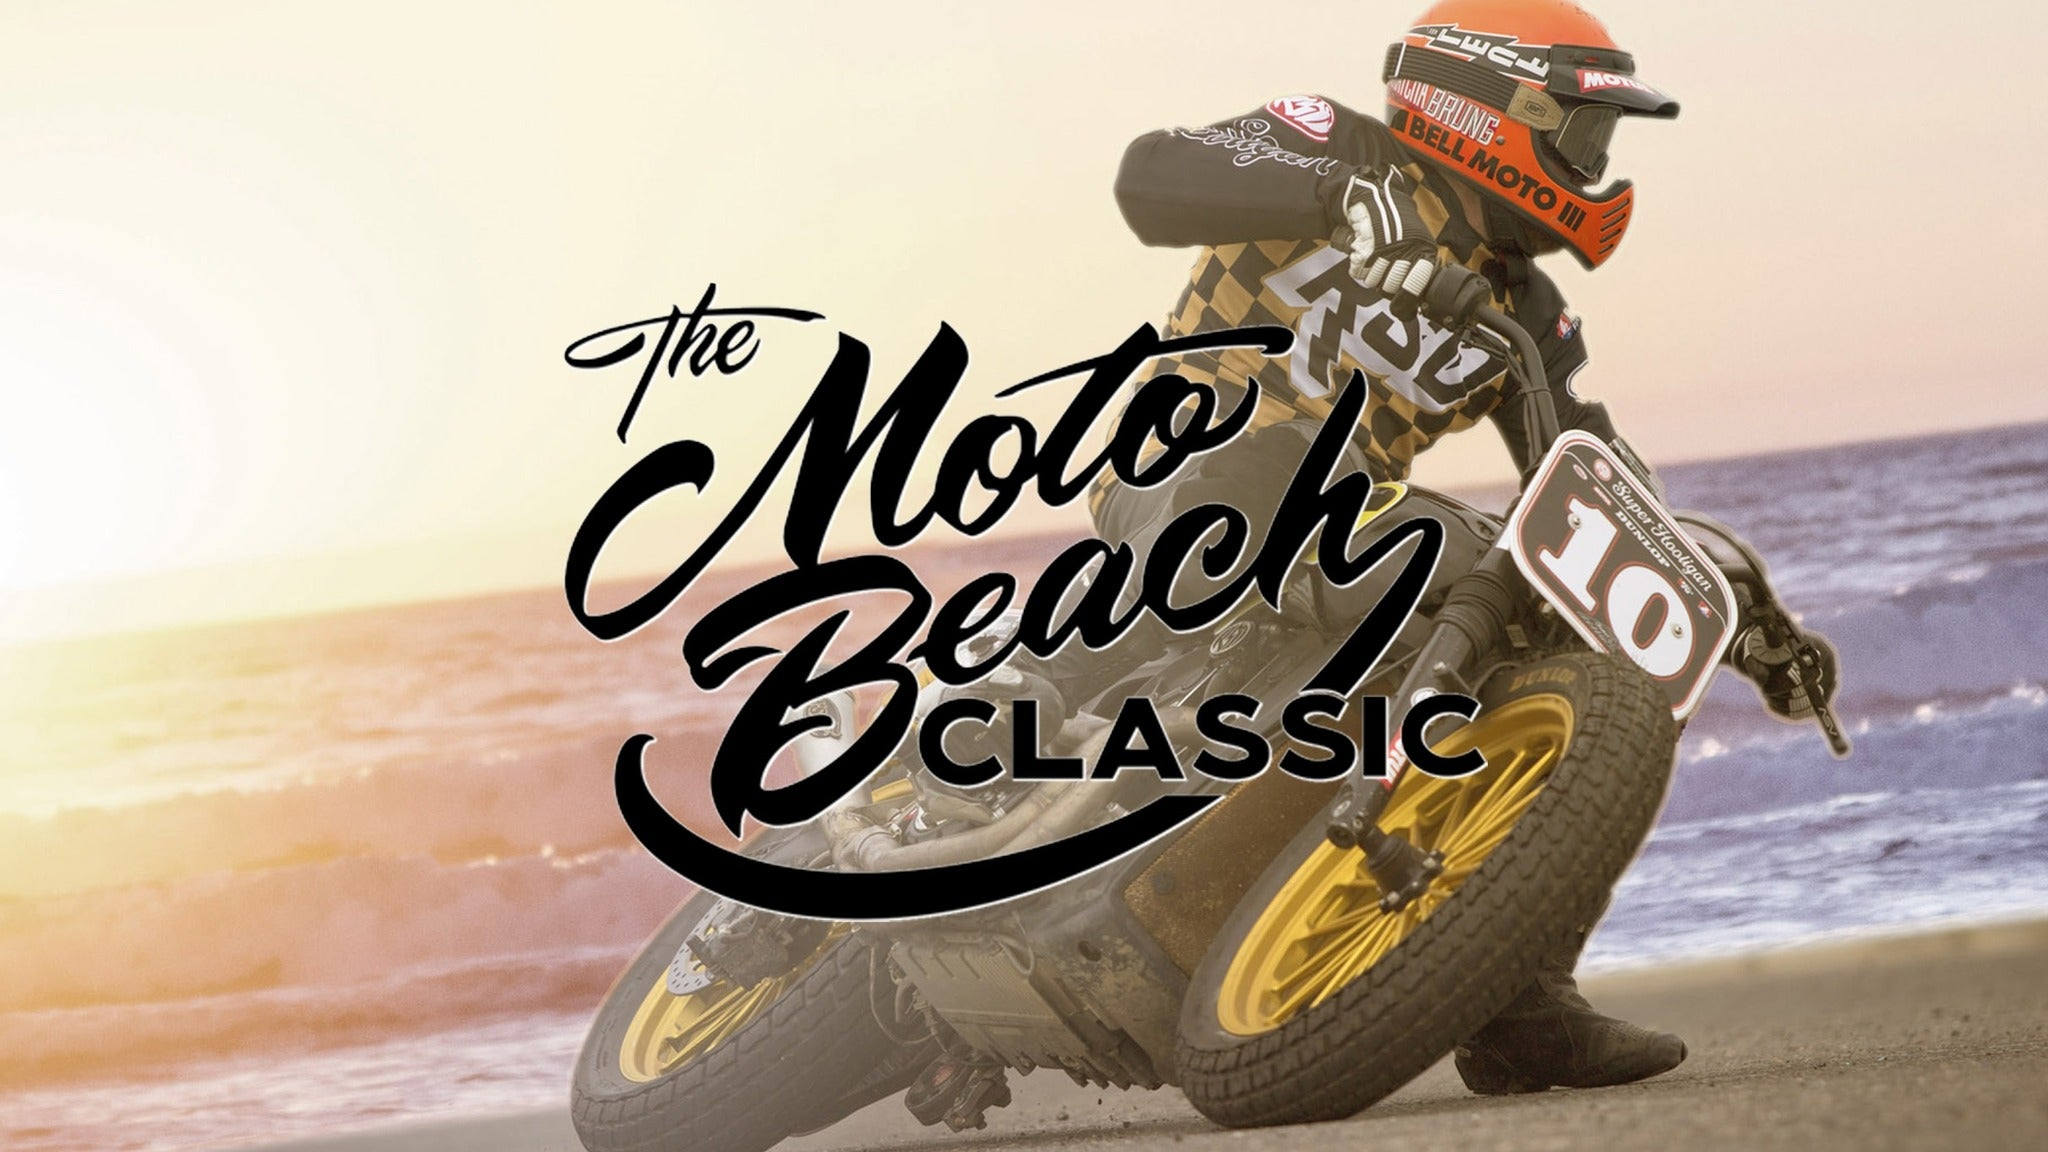 Moto Beach Classic at Bolsa Chica State Beach